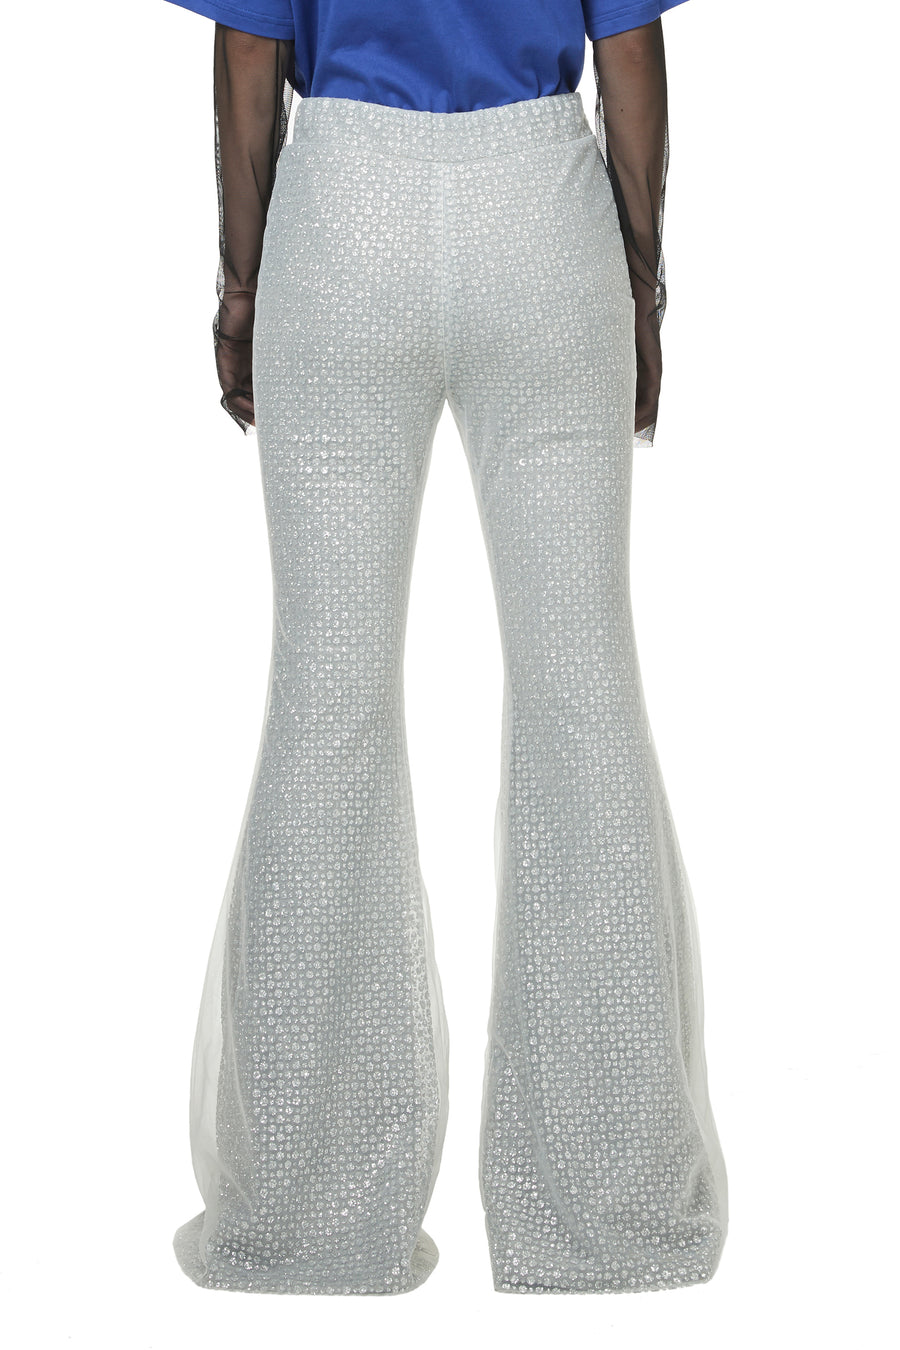 Grey Sparkling Flare Pants